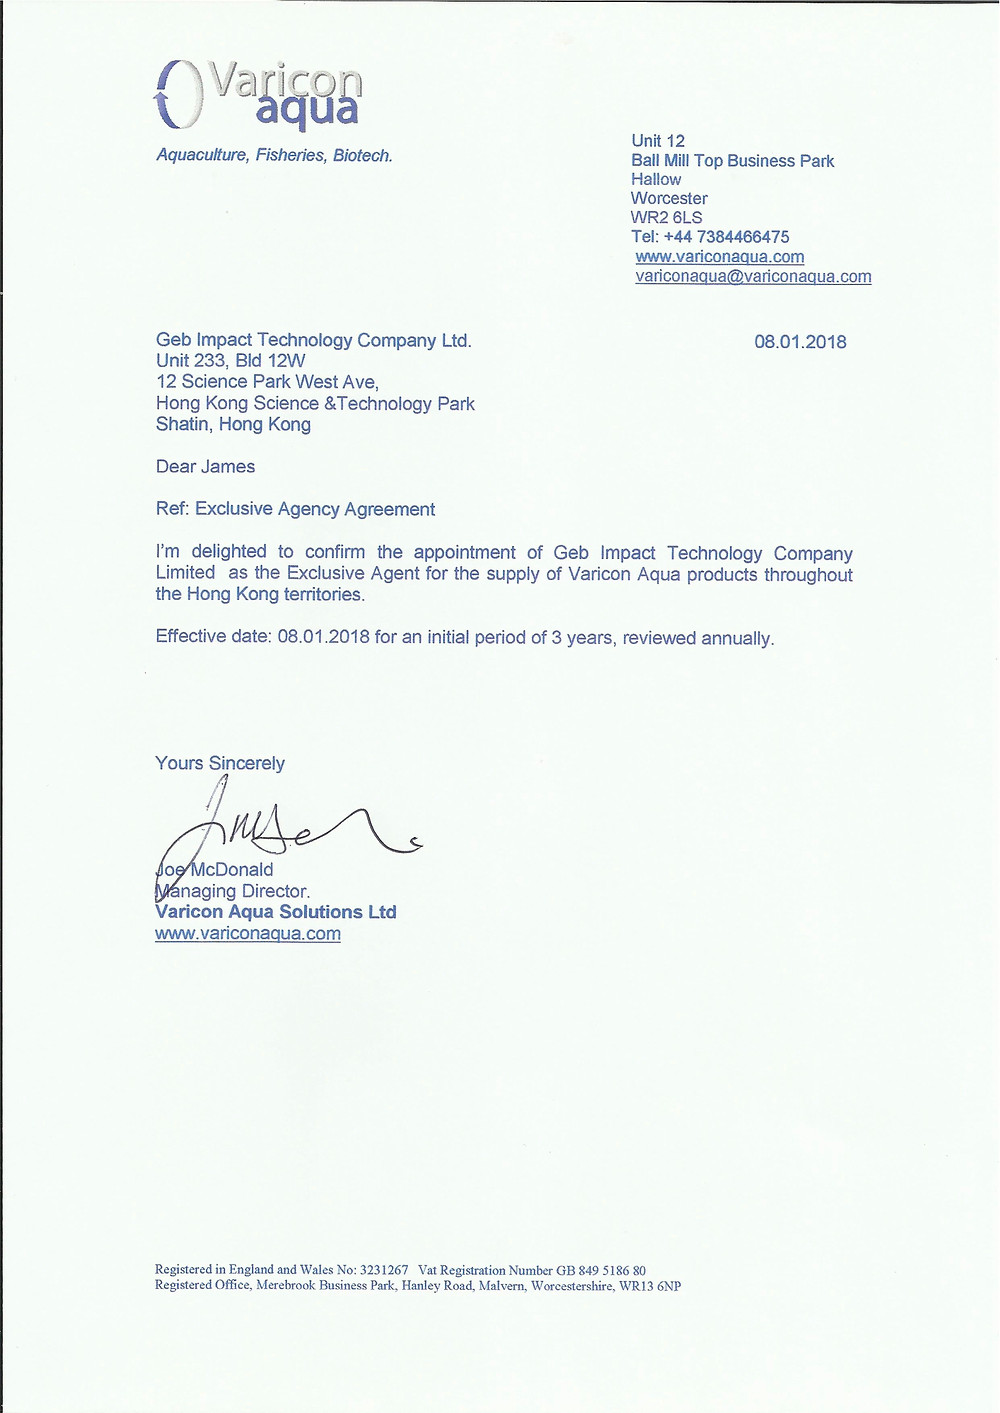 Appointment Letter from Varicon Aqua